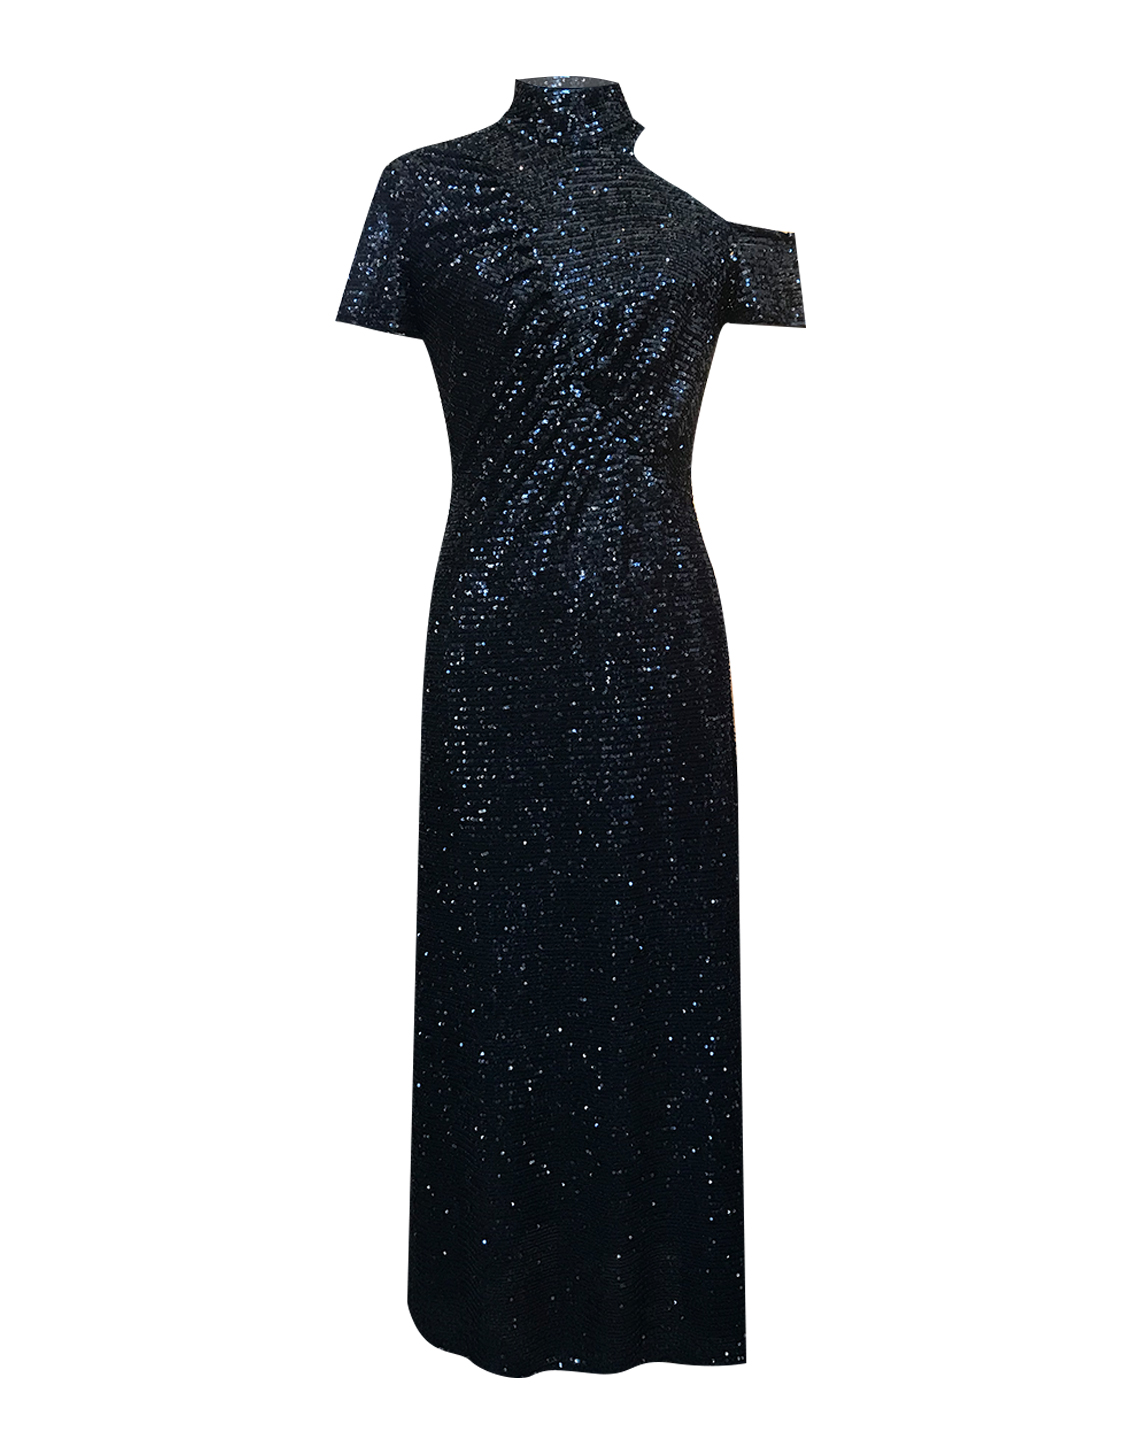 Celtic Dress-Sequins Black by Jessica K on curated-crowd.com